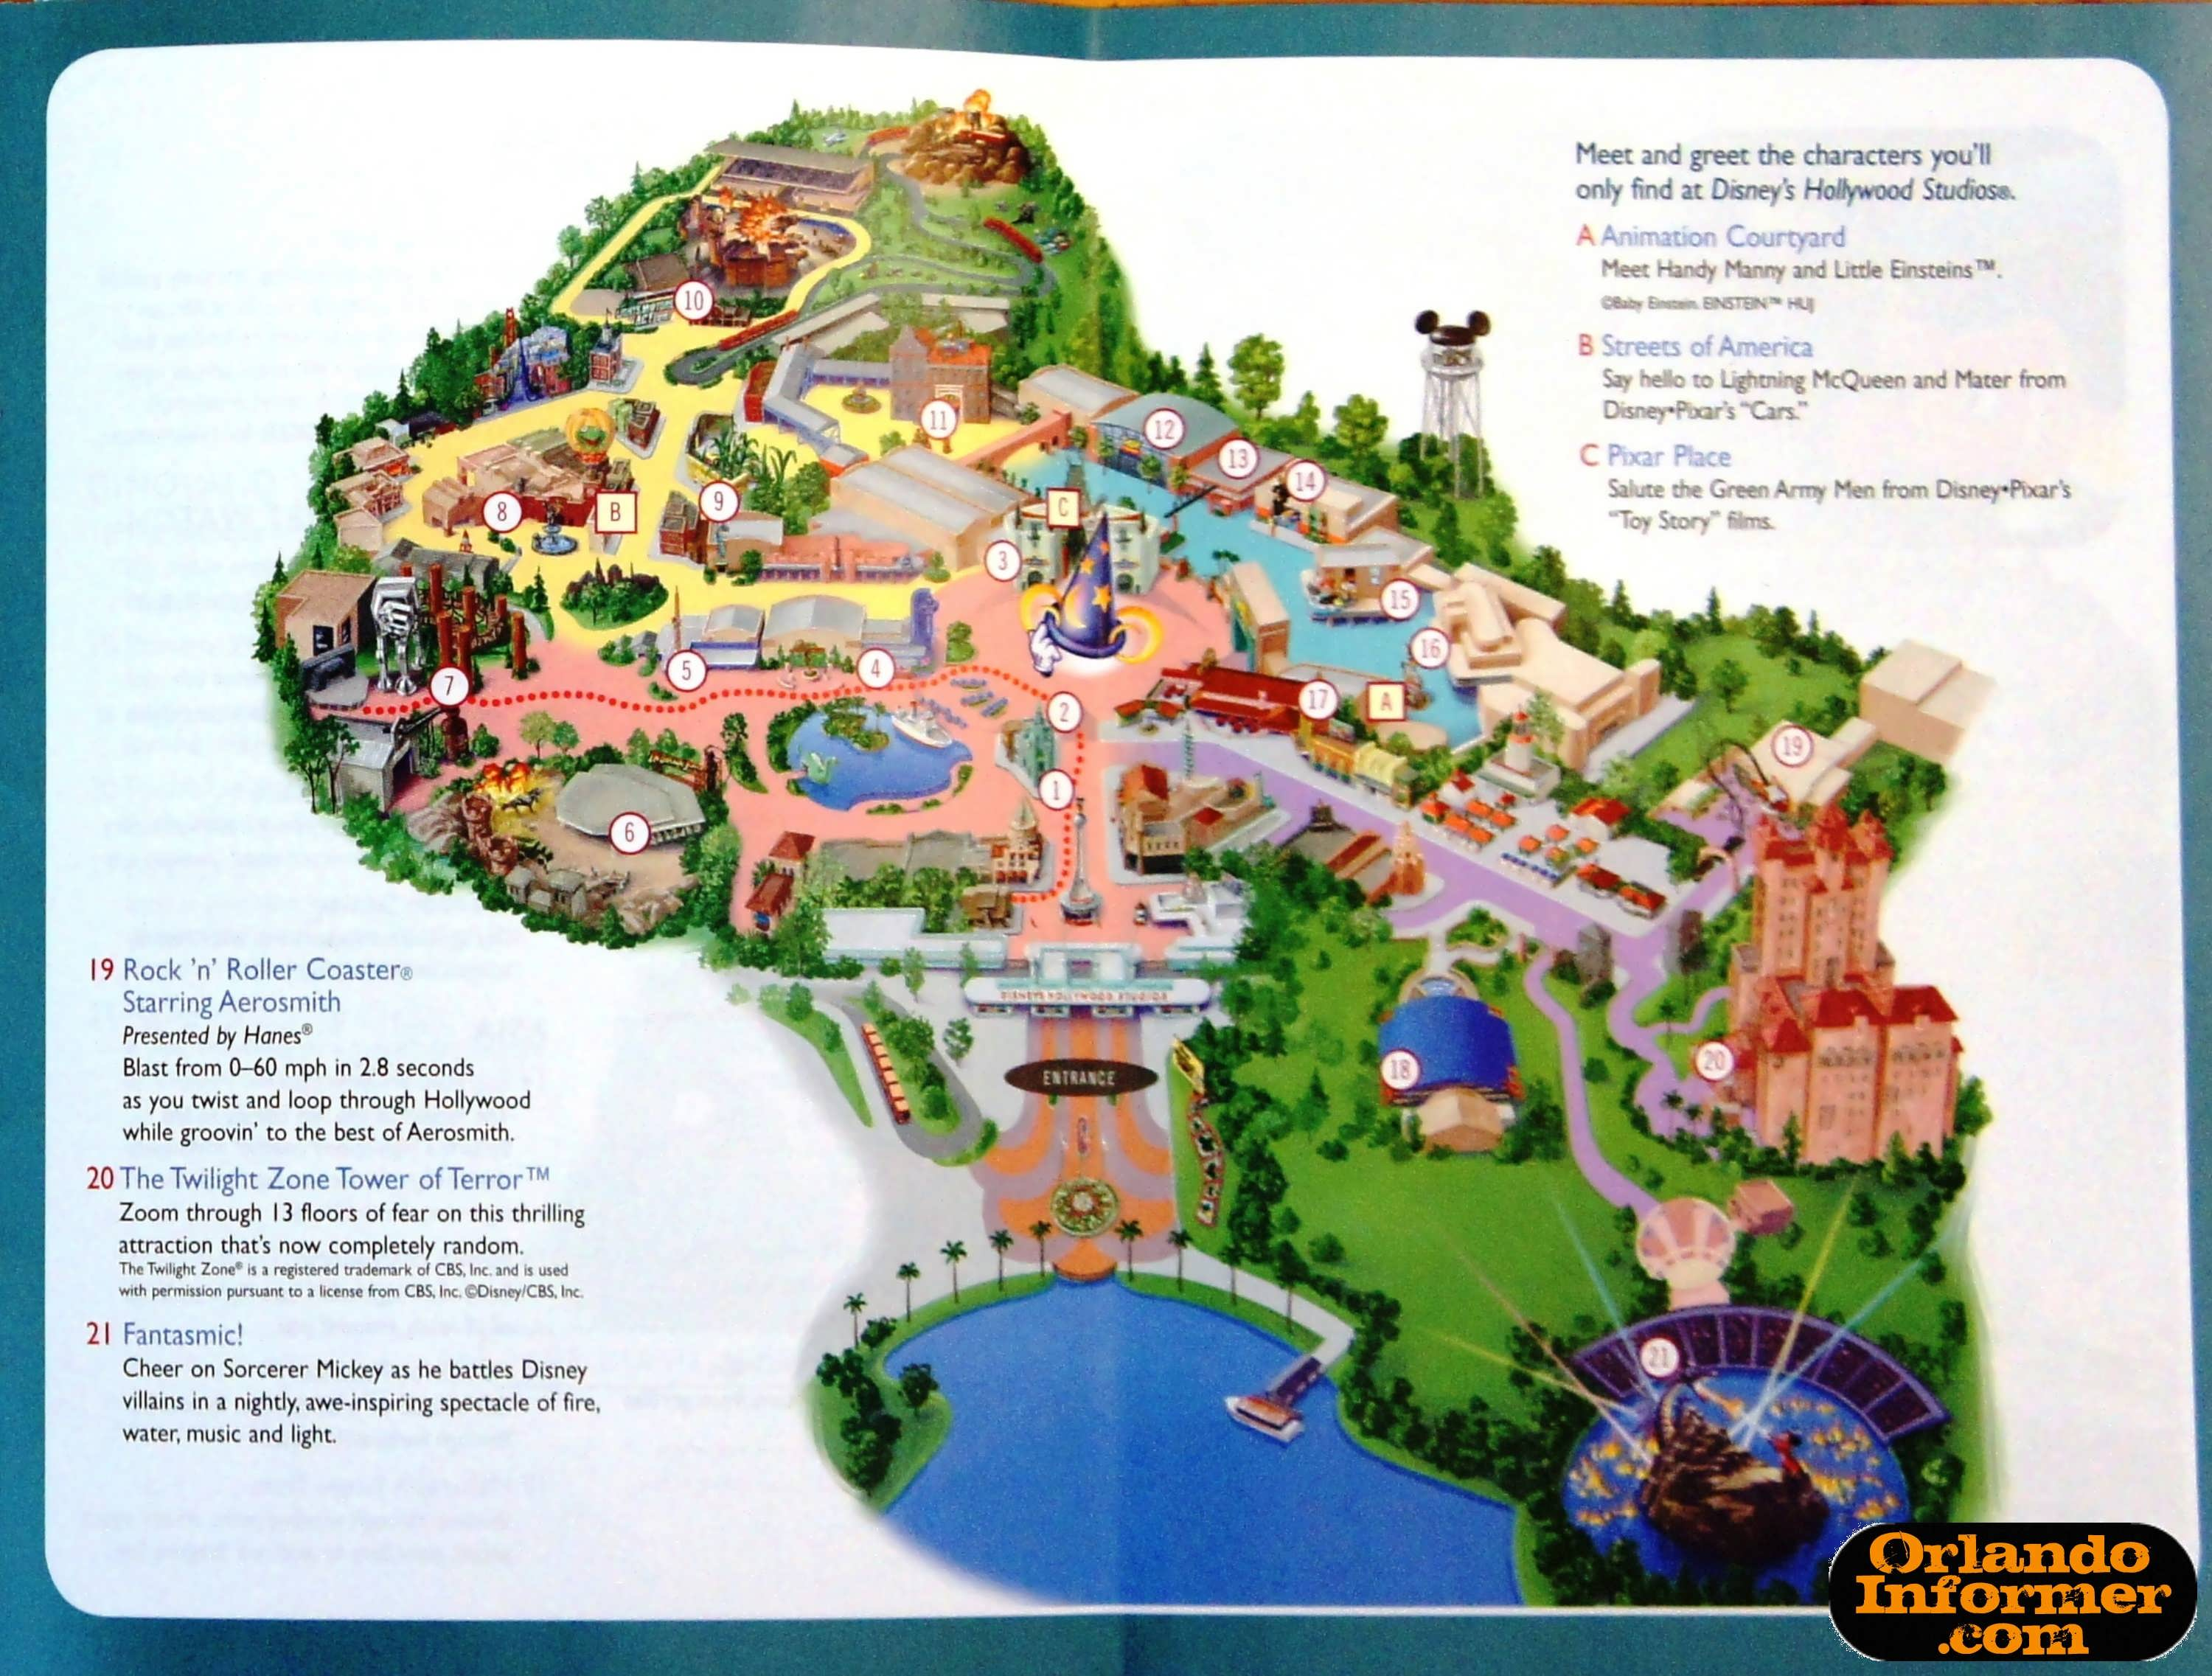 2011 Walt Disney World vacation brochure: Let the memories begin!